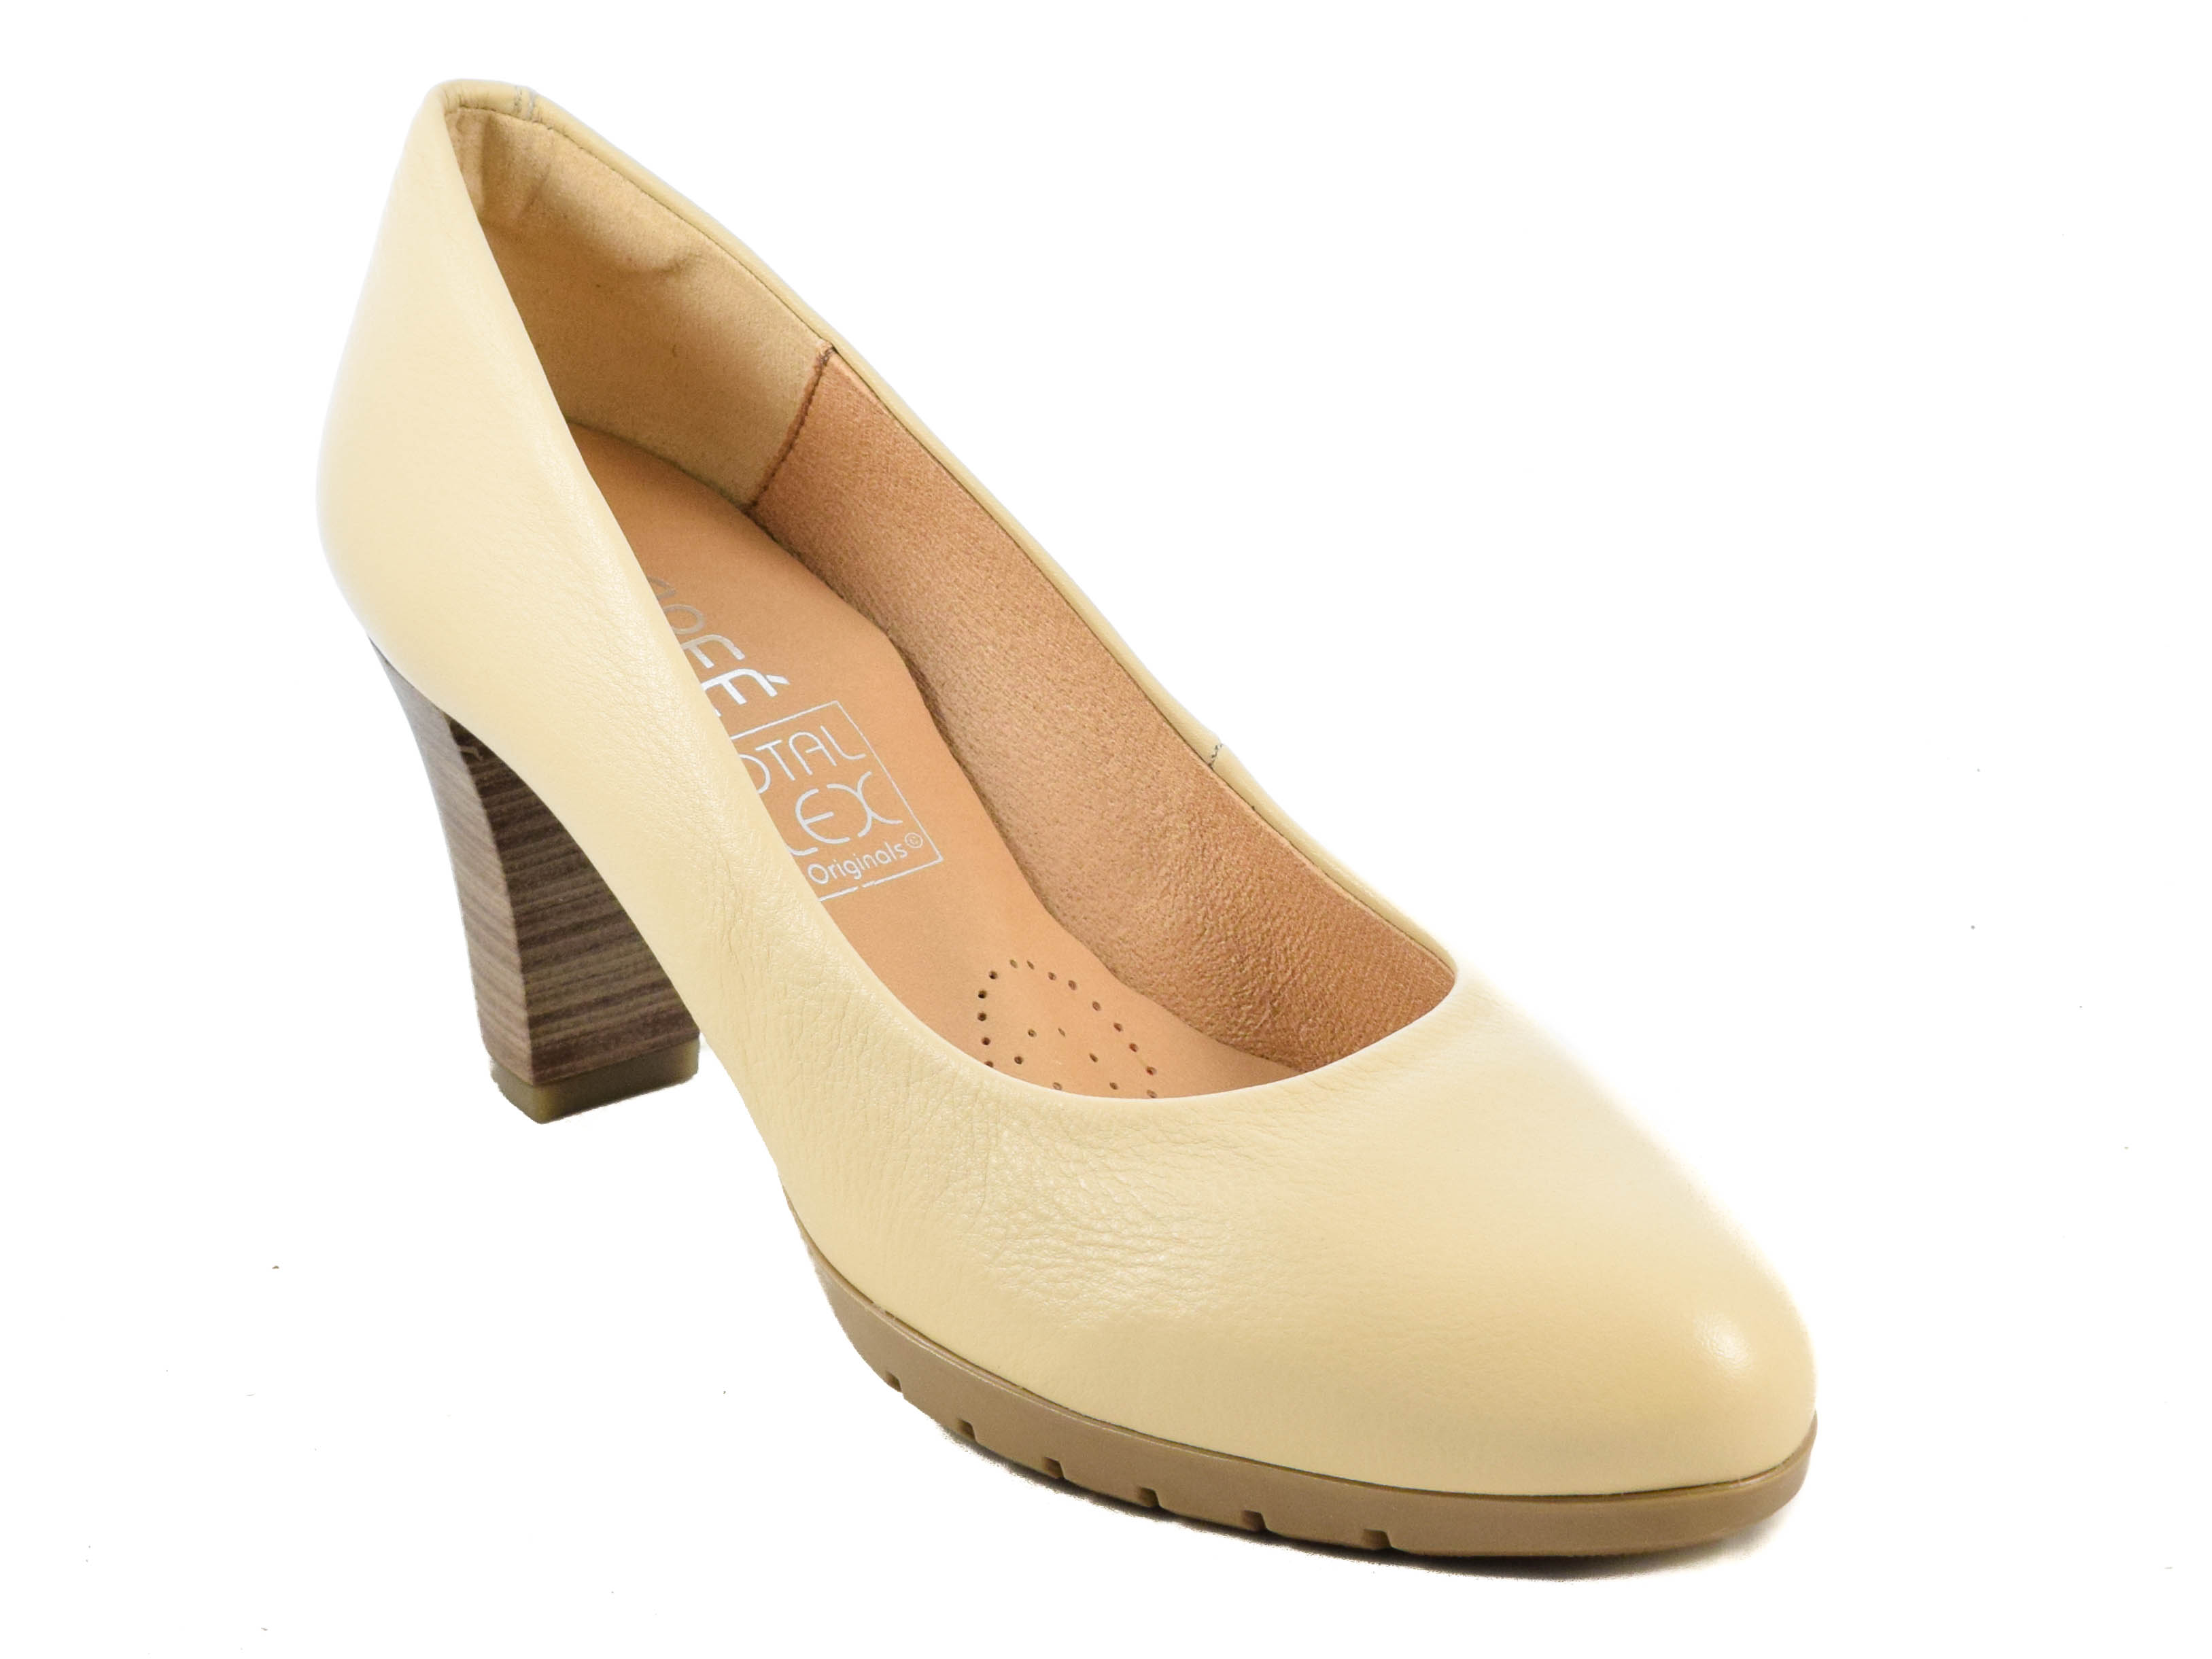 DESIREE DE2220 BEIGE Μπεζ